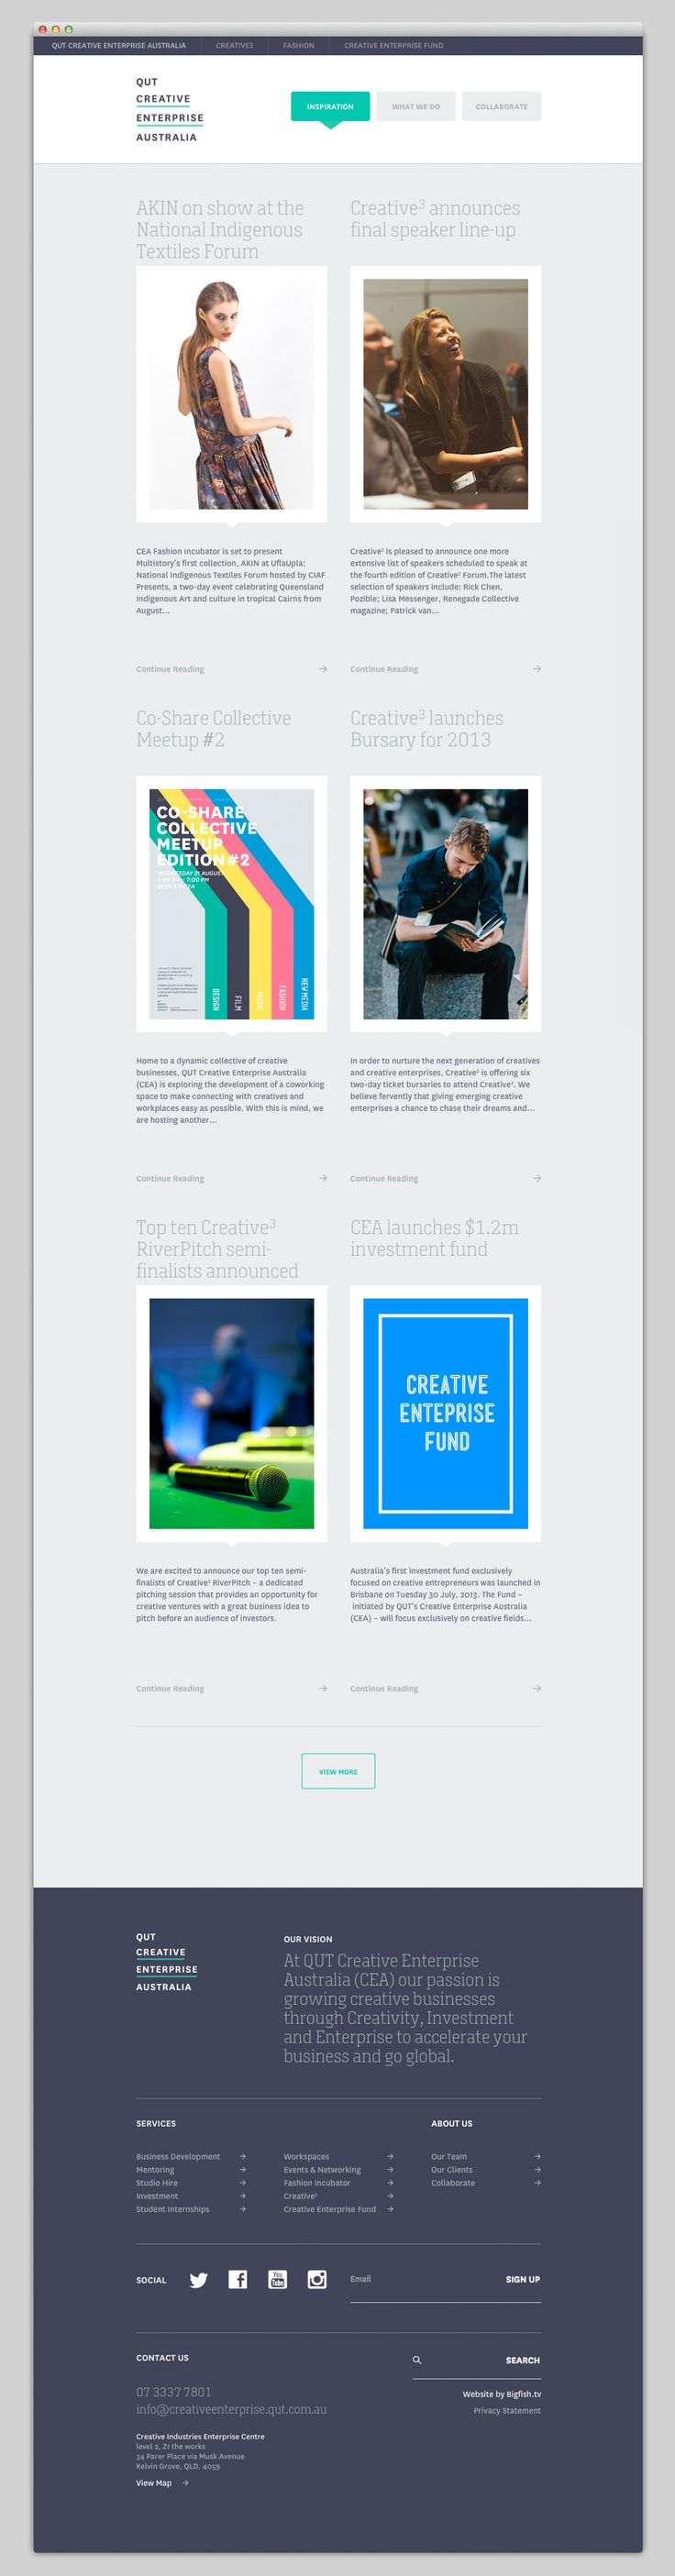 The Web Aesthetic — Creative Enterprise Australia